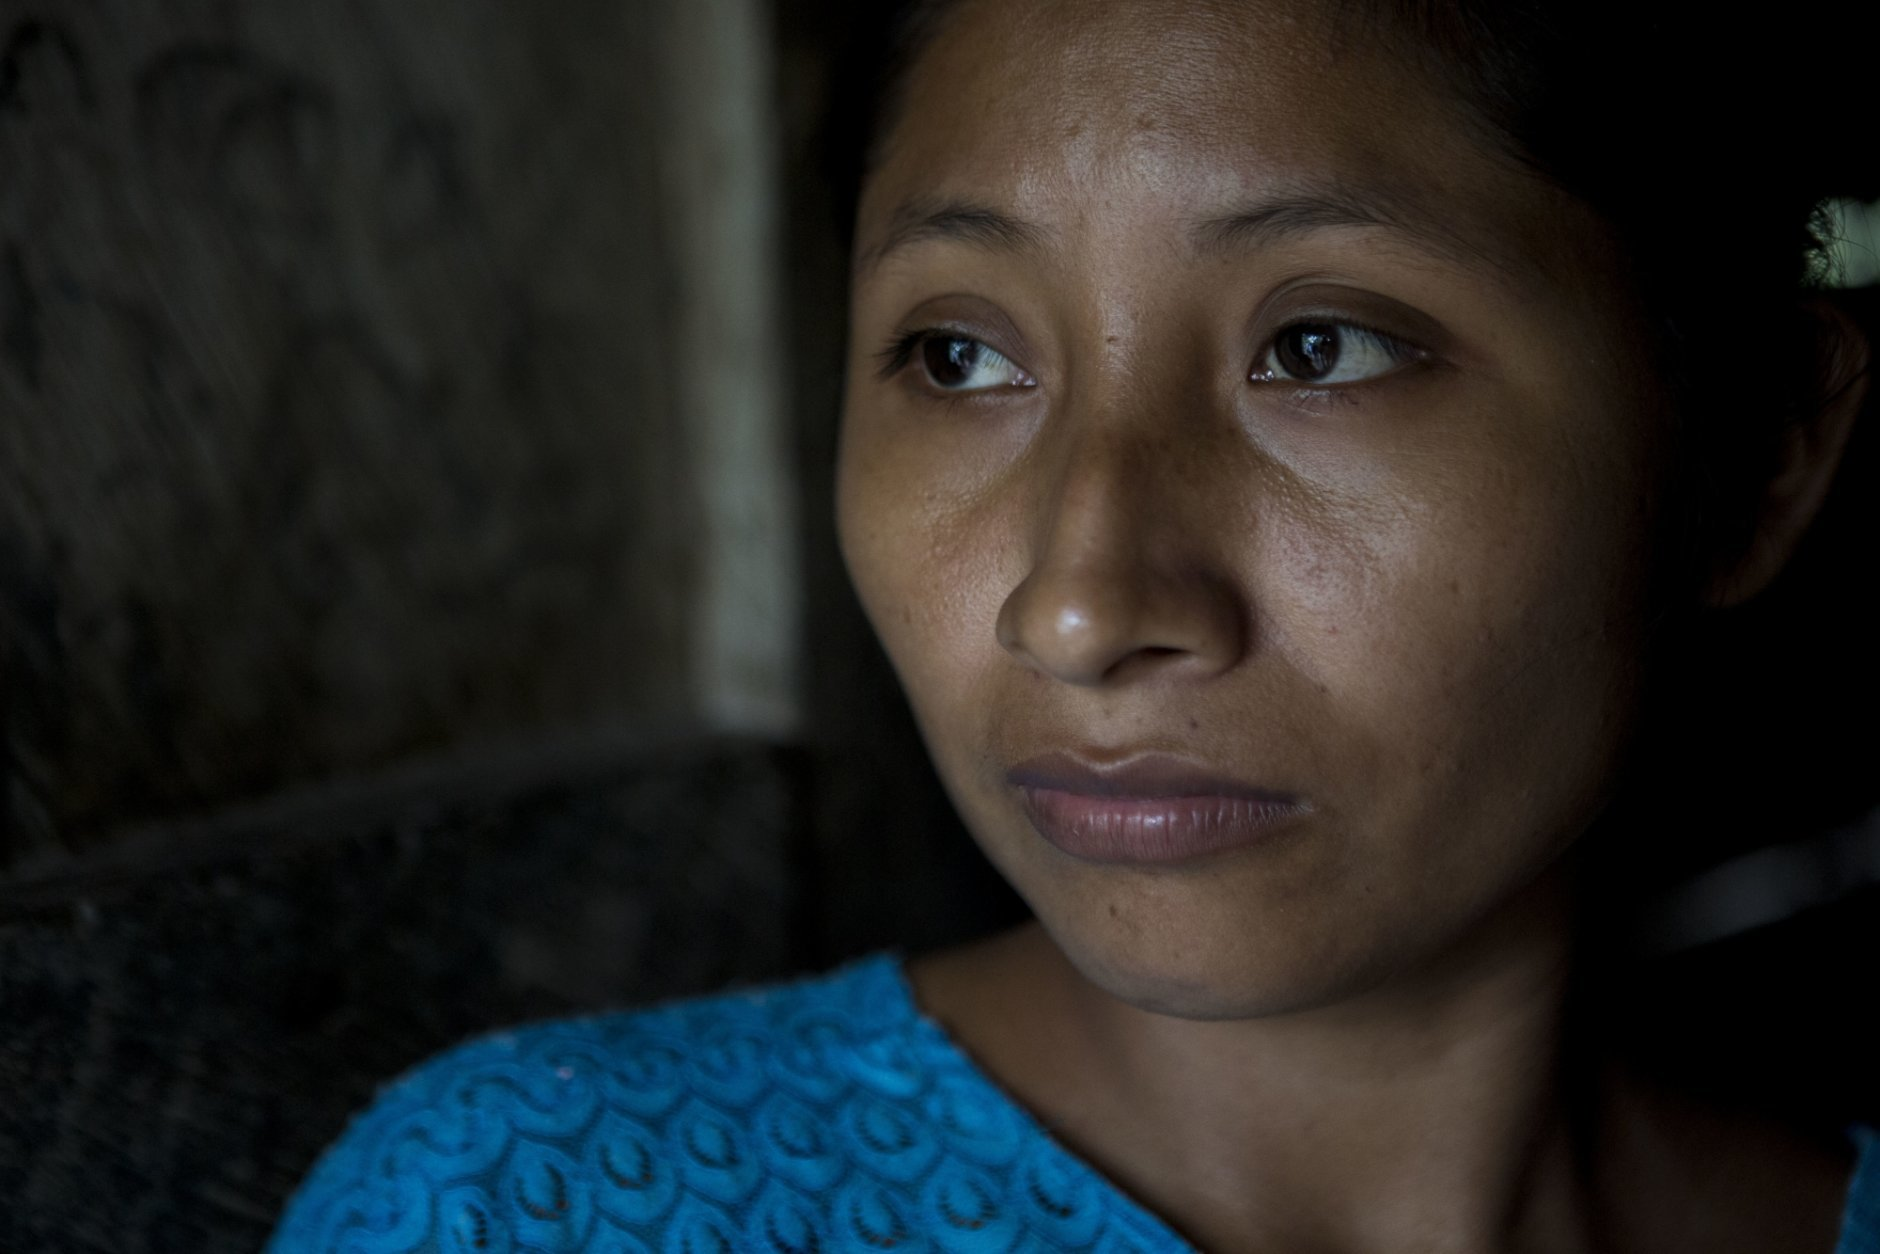 Claudia Maquin, 27, poses for a portrait at her house in Raxruha, Guatemala, on Saturday, Dec. 15, 2018. Claudia Maquin's daughter, 7-year-old Jakelin Amei Rosmery Caal, died in a Texas hospital, two days after being taken into custody by border patrol agents in a remote stretch of New Mexico desert. (AP Photo/Oliver de Ros)